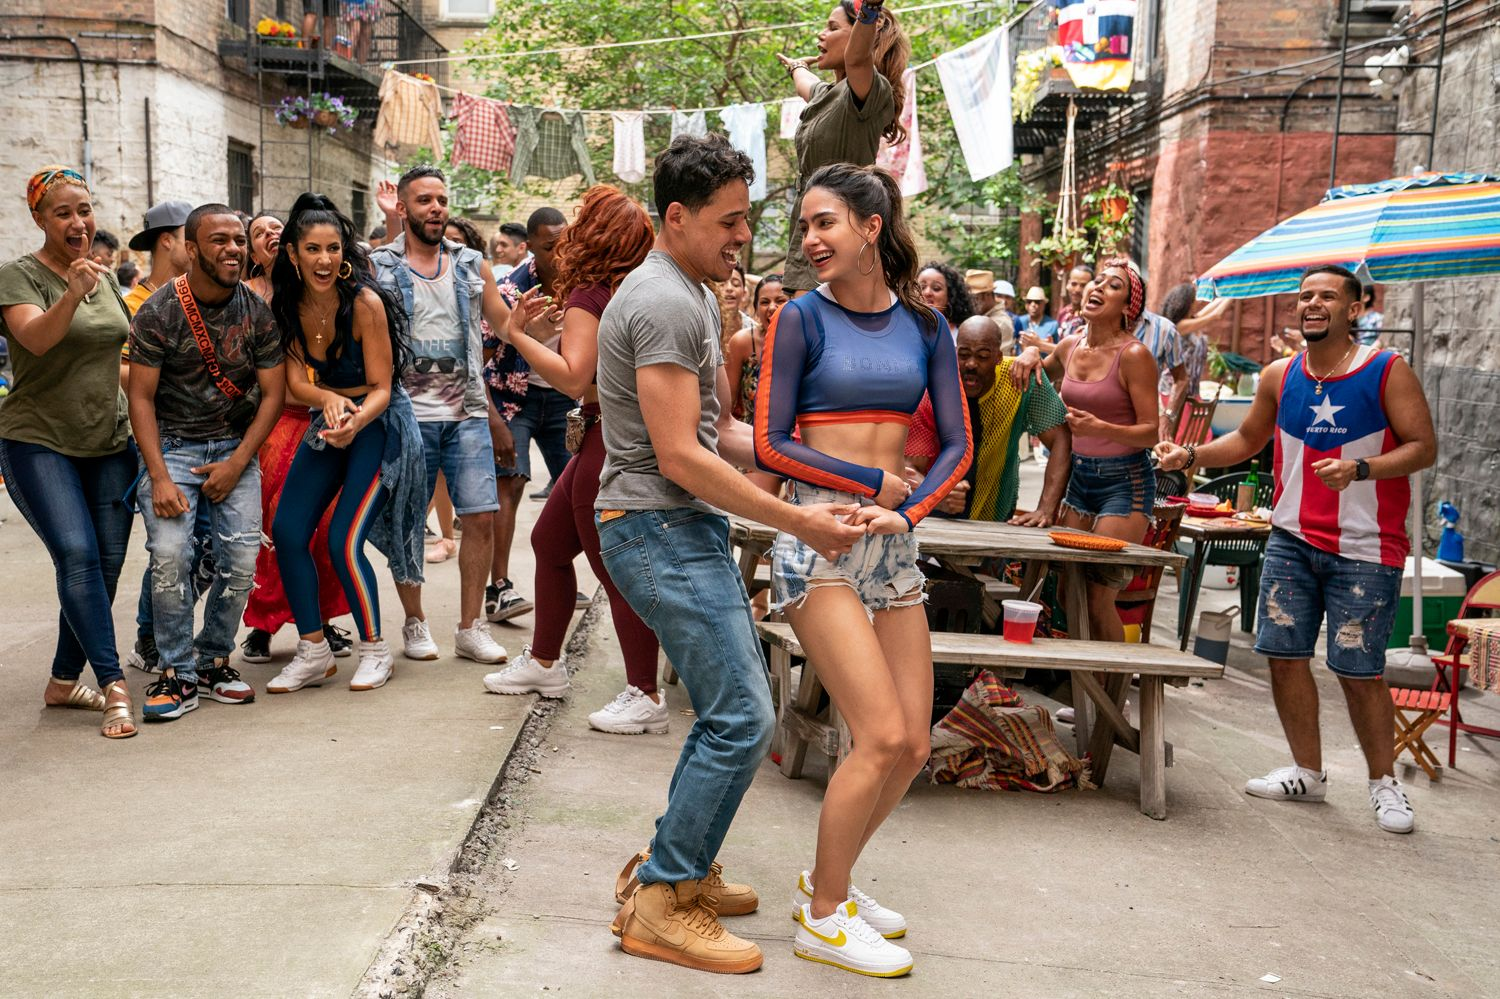 In the Heights: Watch the First 8 Minutes of the Upcoming Musical